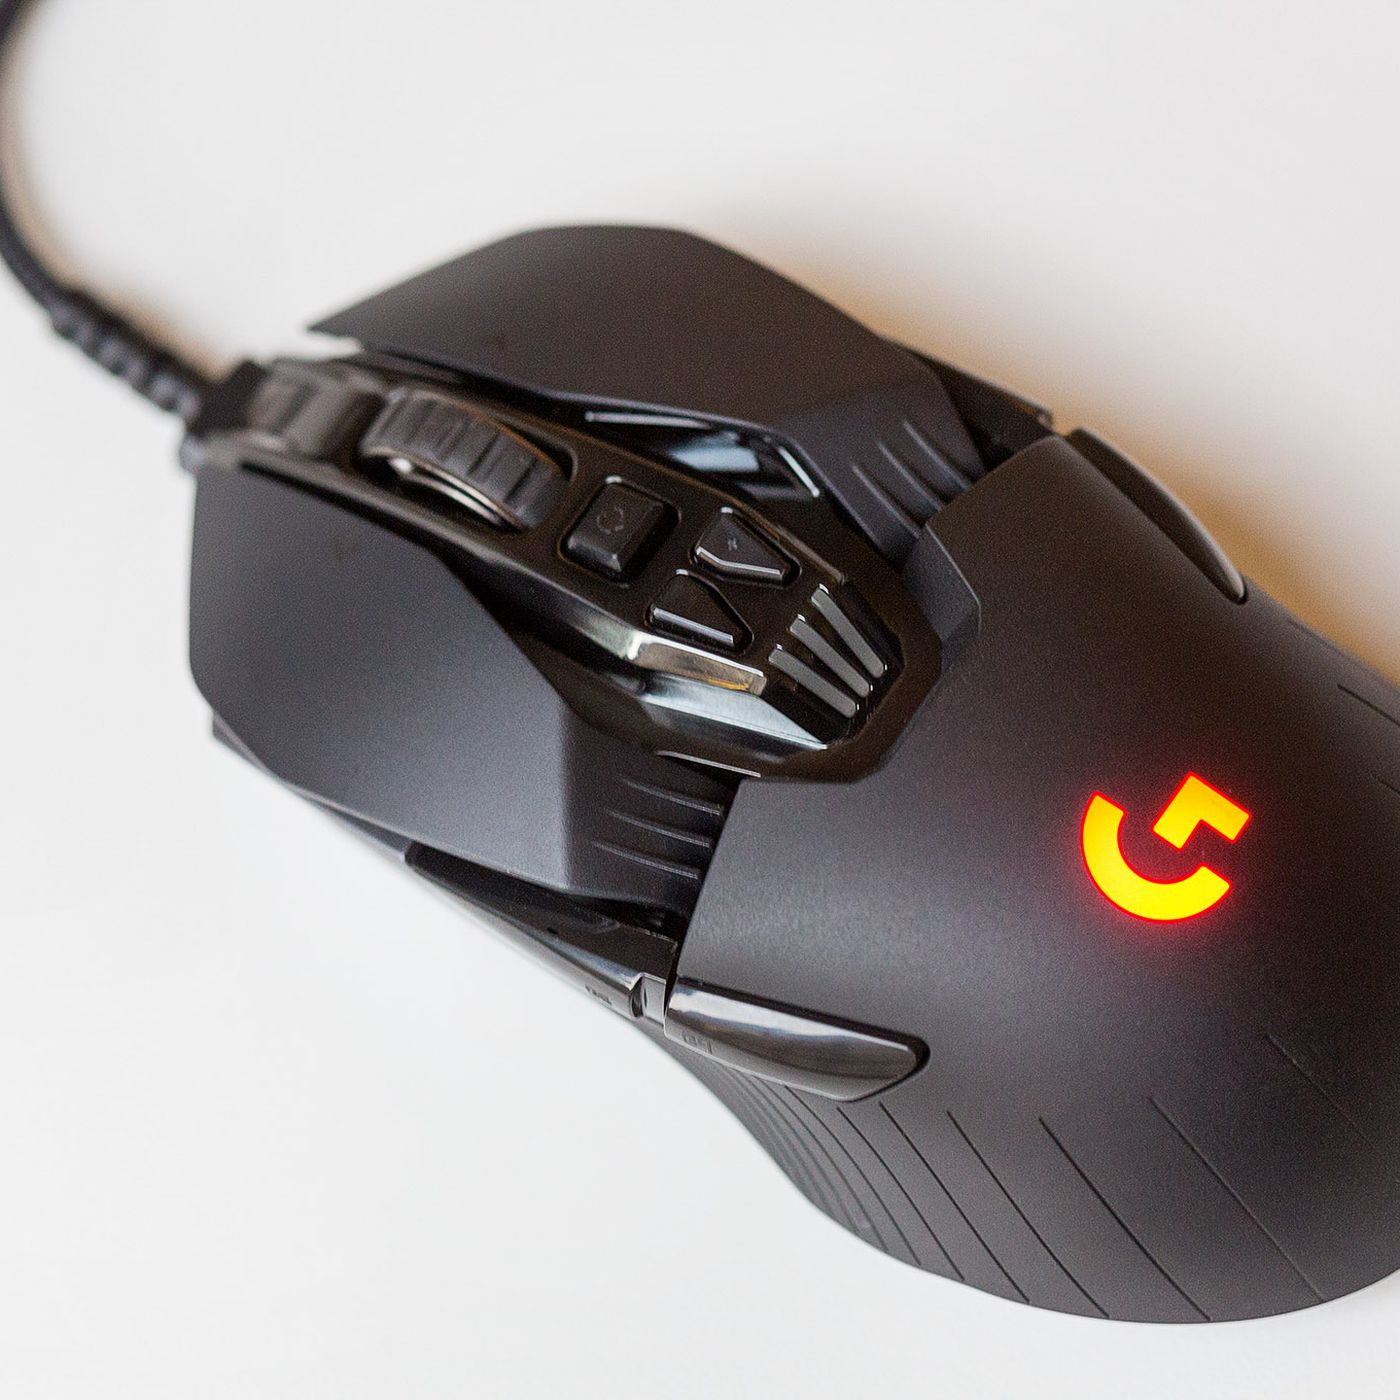 The Logitech G900 is my favorite mouse even though I lost the